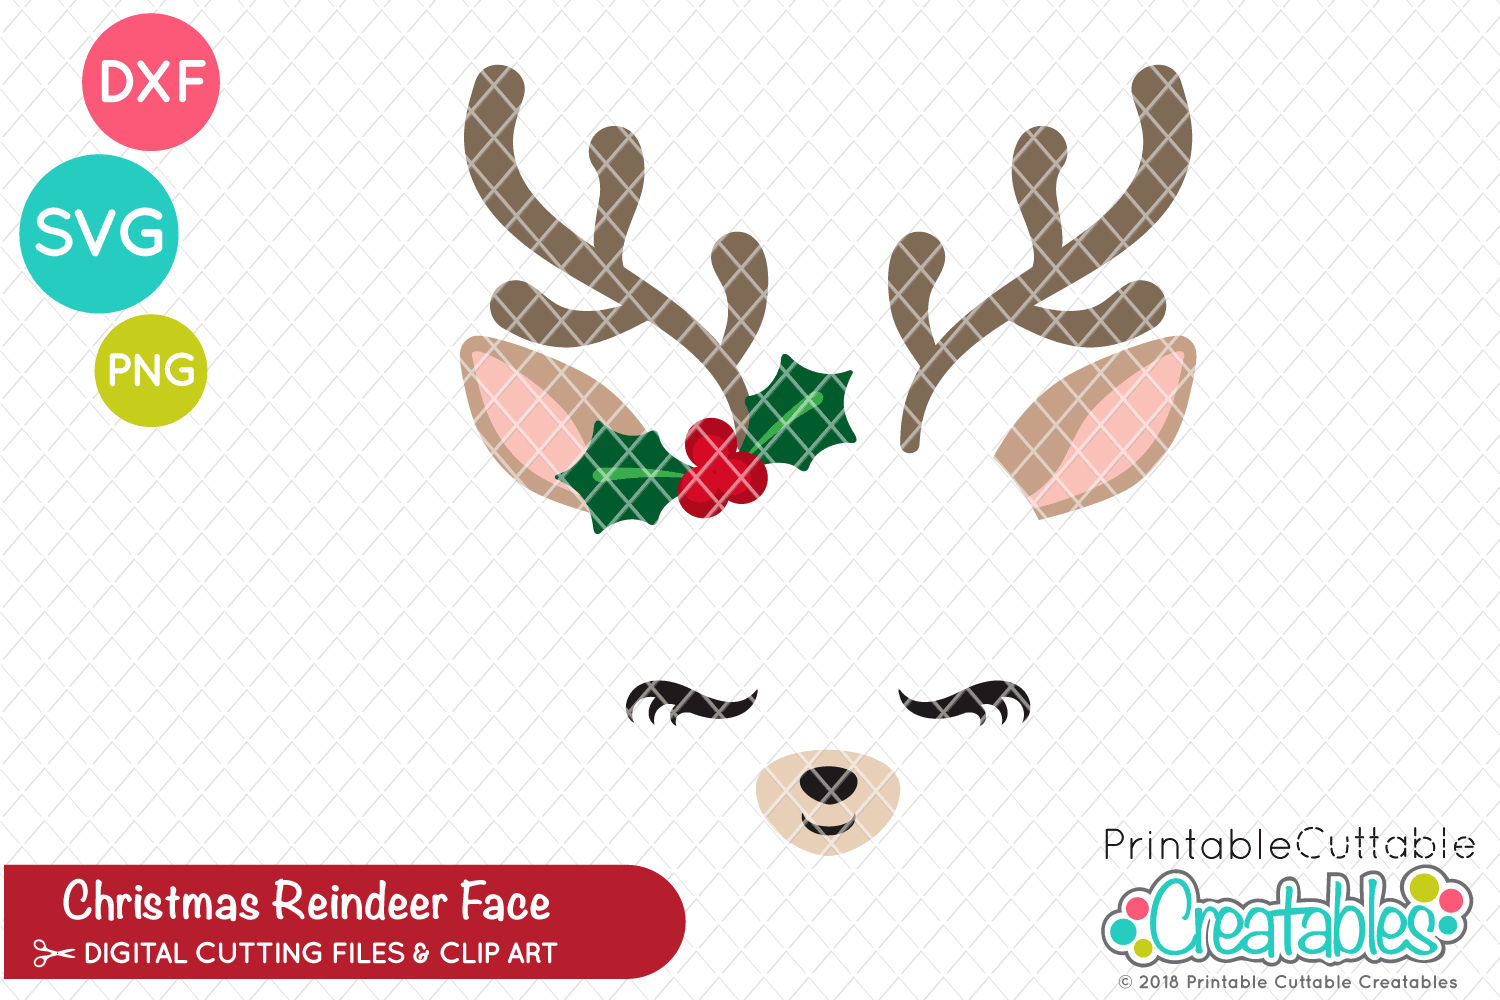 graphic relating to Printable Reindeer Face titled Xmas Reindeer Deal with SVG